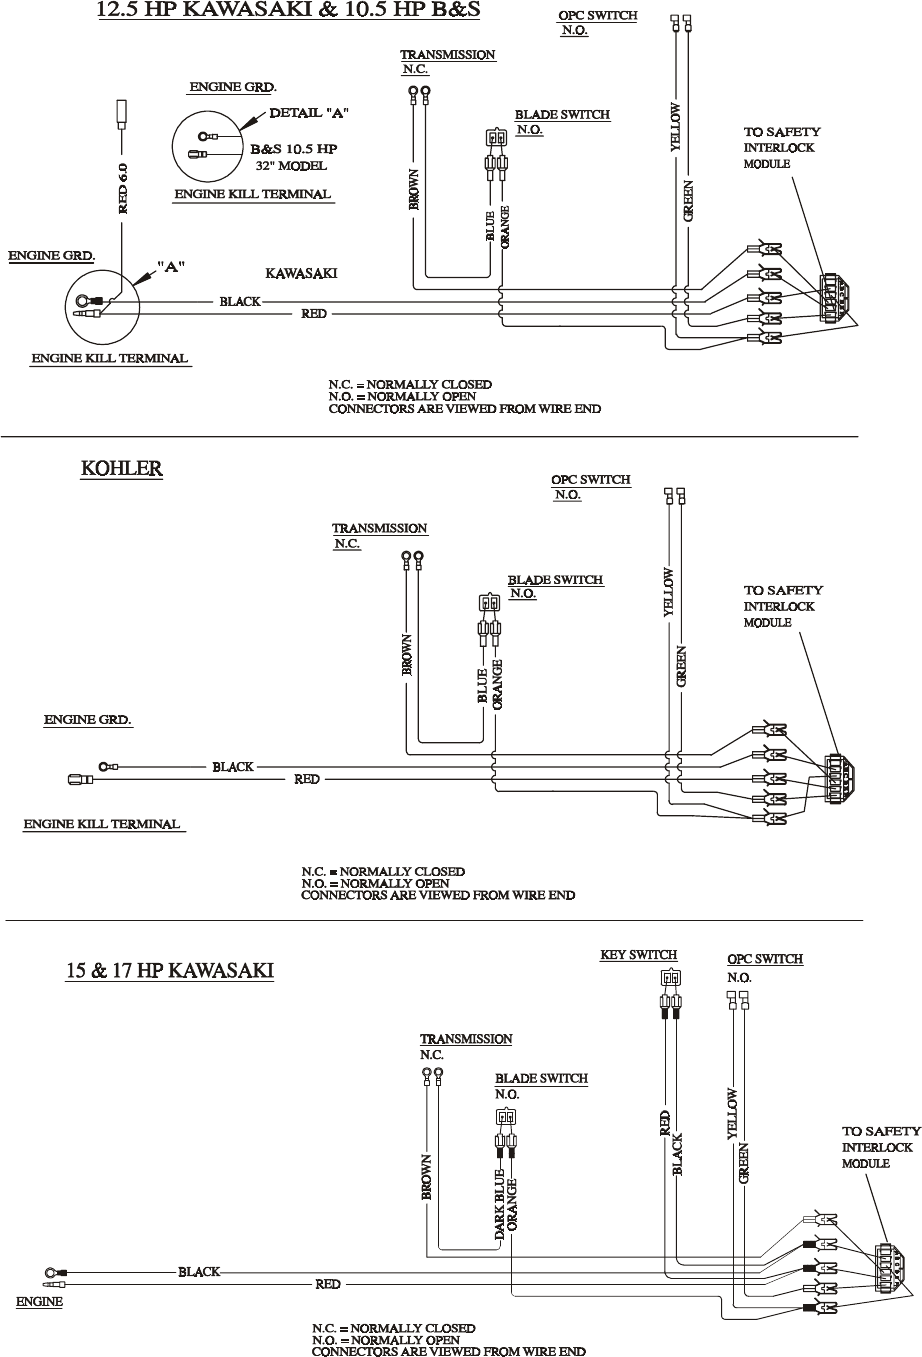 fa869892 6c99 4c24 afcd a612459af1d0 bg27 page 39 of exmark lawn mower metro user guide manualsonline com exmark wiring diagram at fashall.co